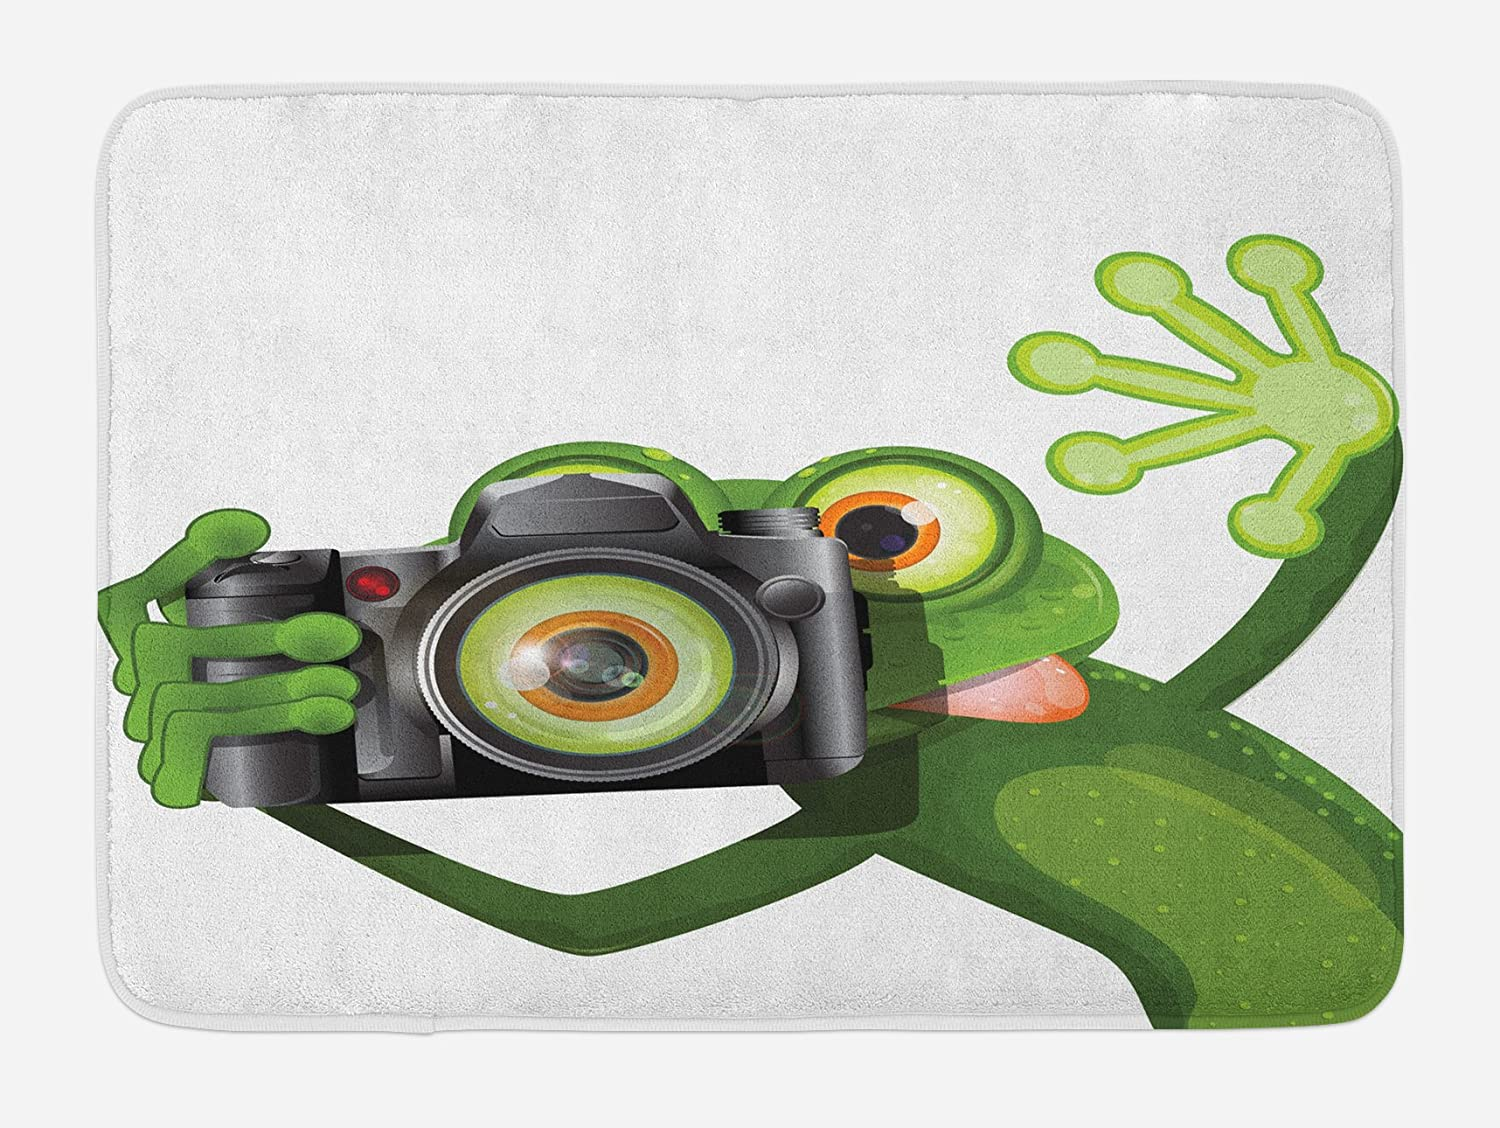 outlet Ambesonne Animal Bath Mat, Photographer Merry Green Frog Taking with His Camera Cute Funny Artful, Plush Bathroom Decor Mat with Non Slip Backing, 29.5 W X 17.5 W Inches, White Black